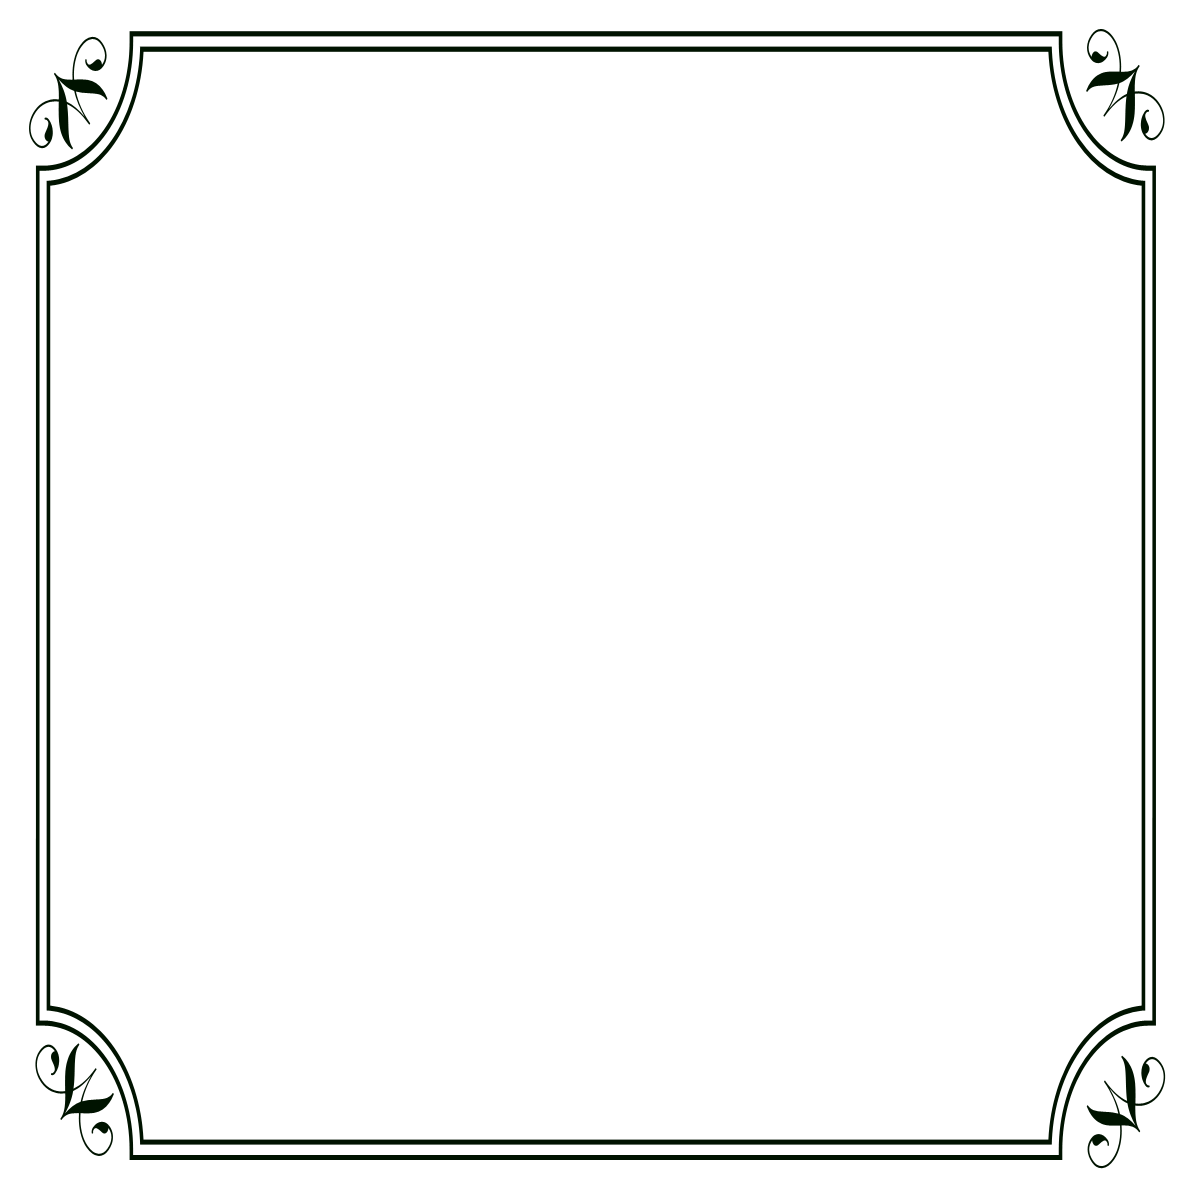 Png borders for photoshop. Black border frame picture